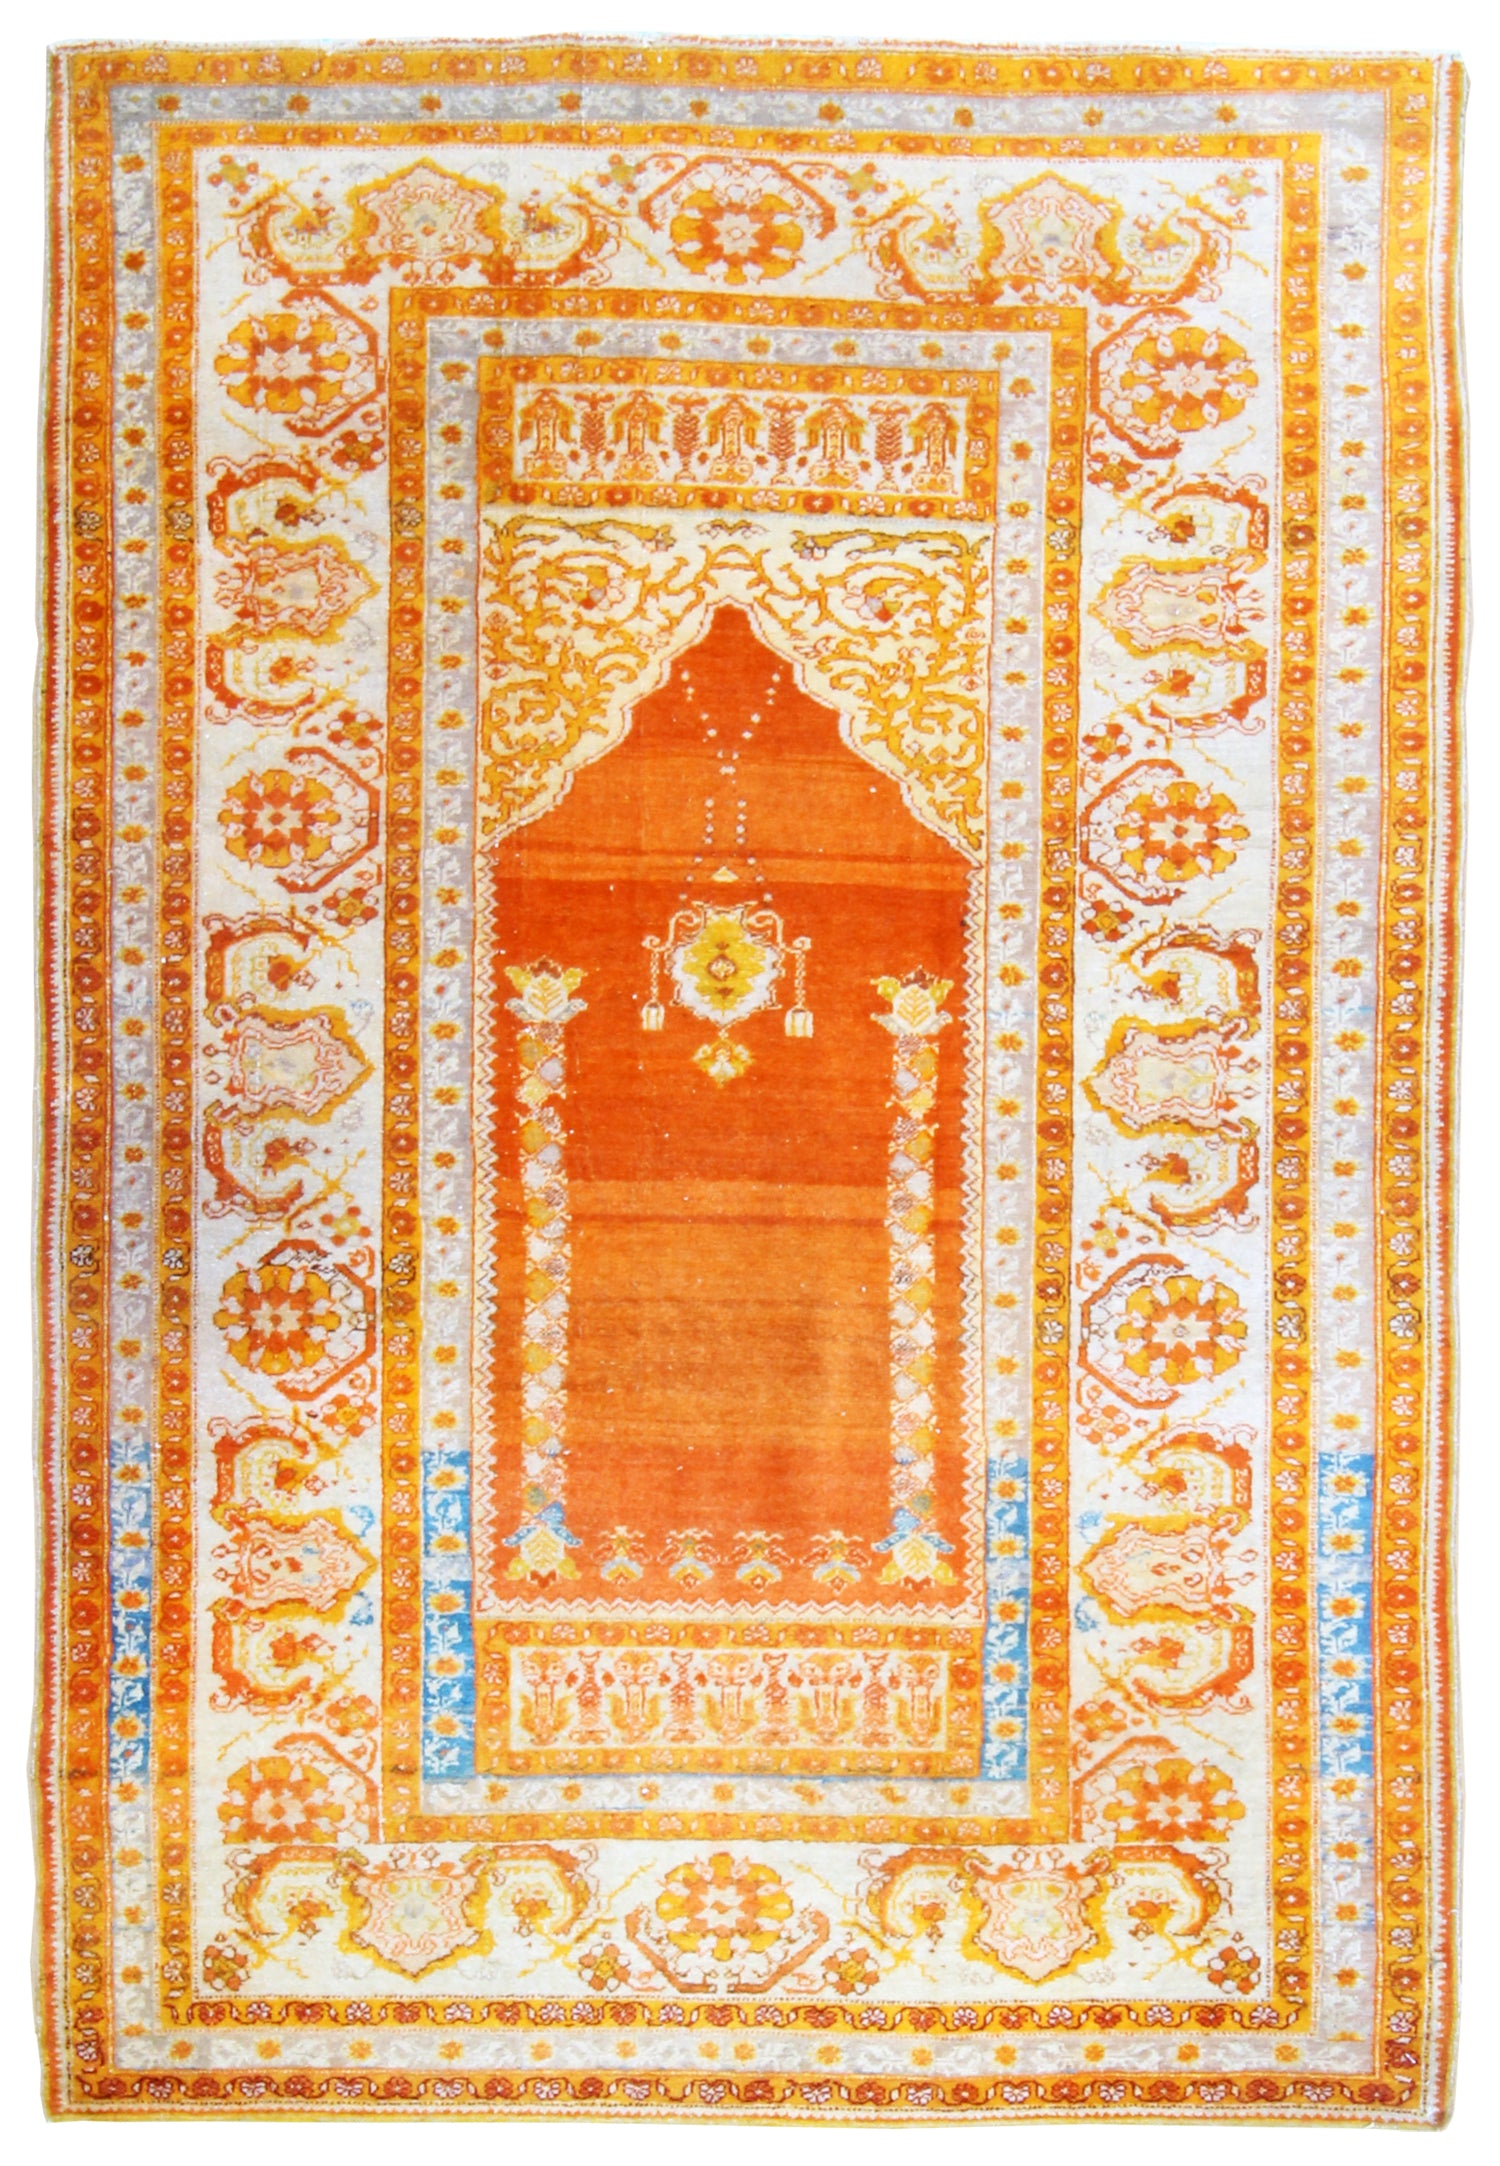 Turkish Ghiordes Antique Prayer Rug-Turco Persian Rug Company Inc.